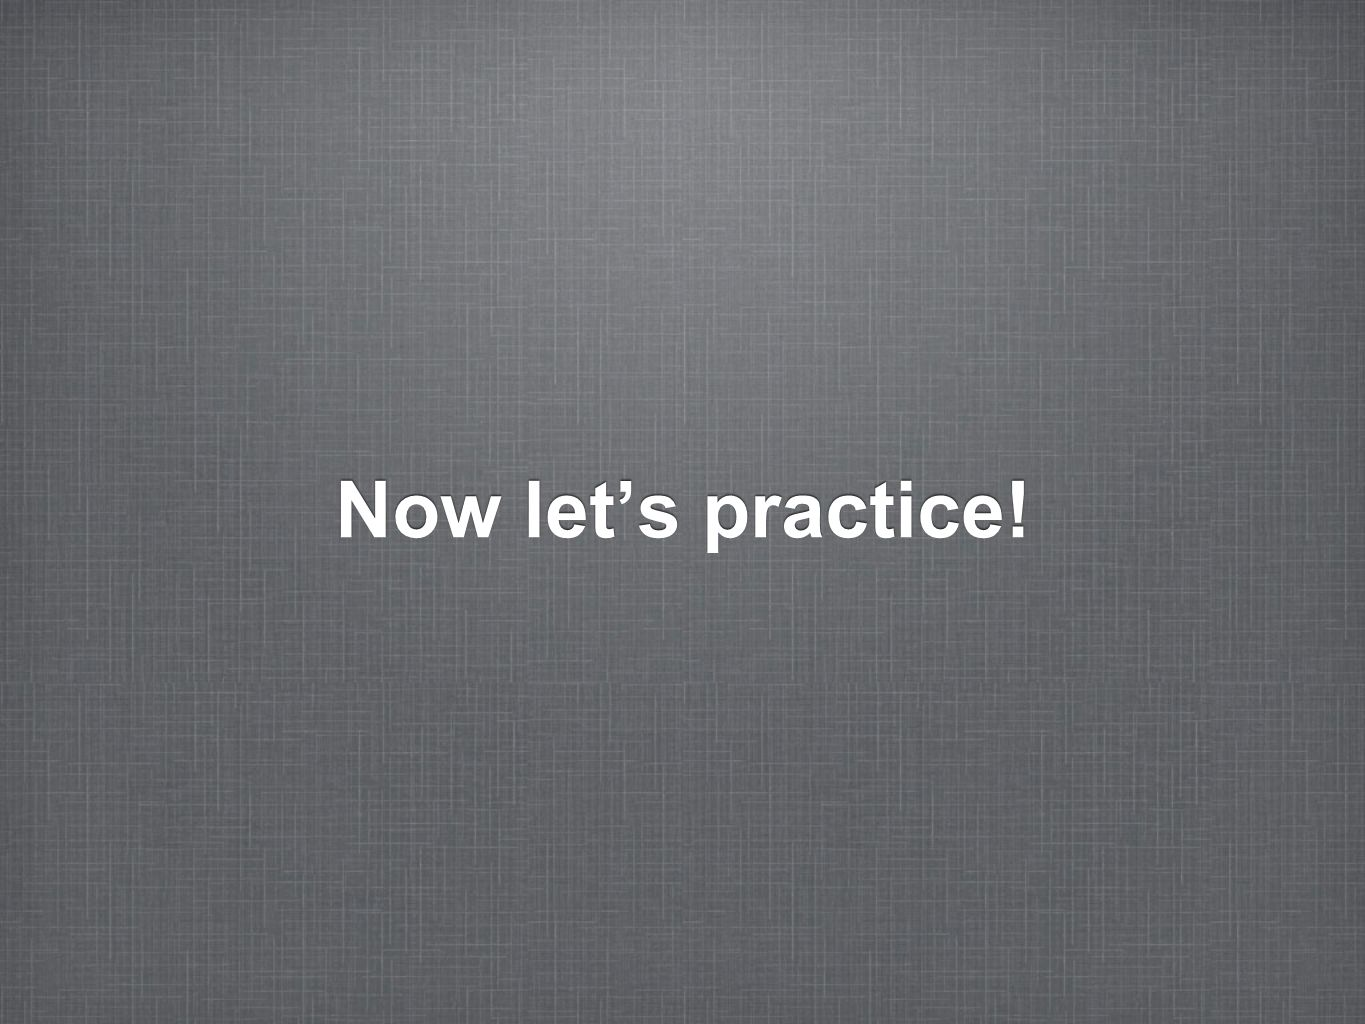 Now let's practice!